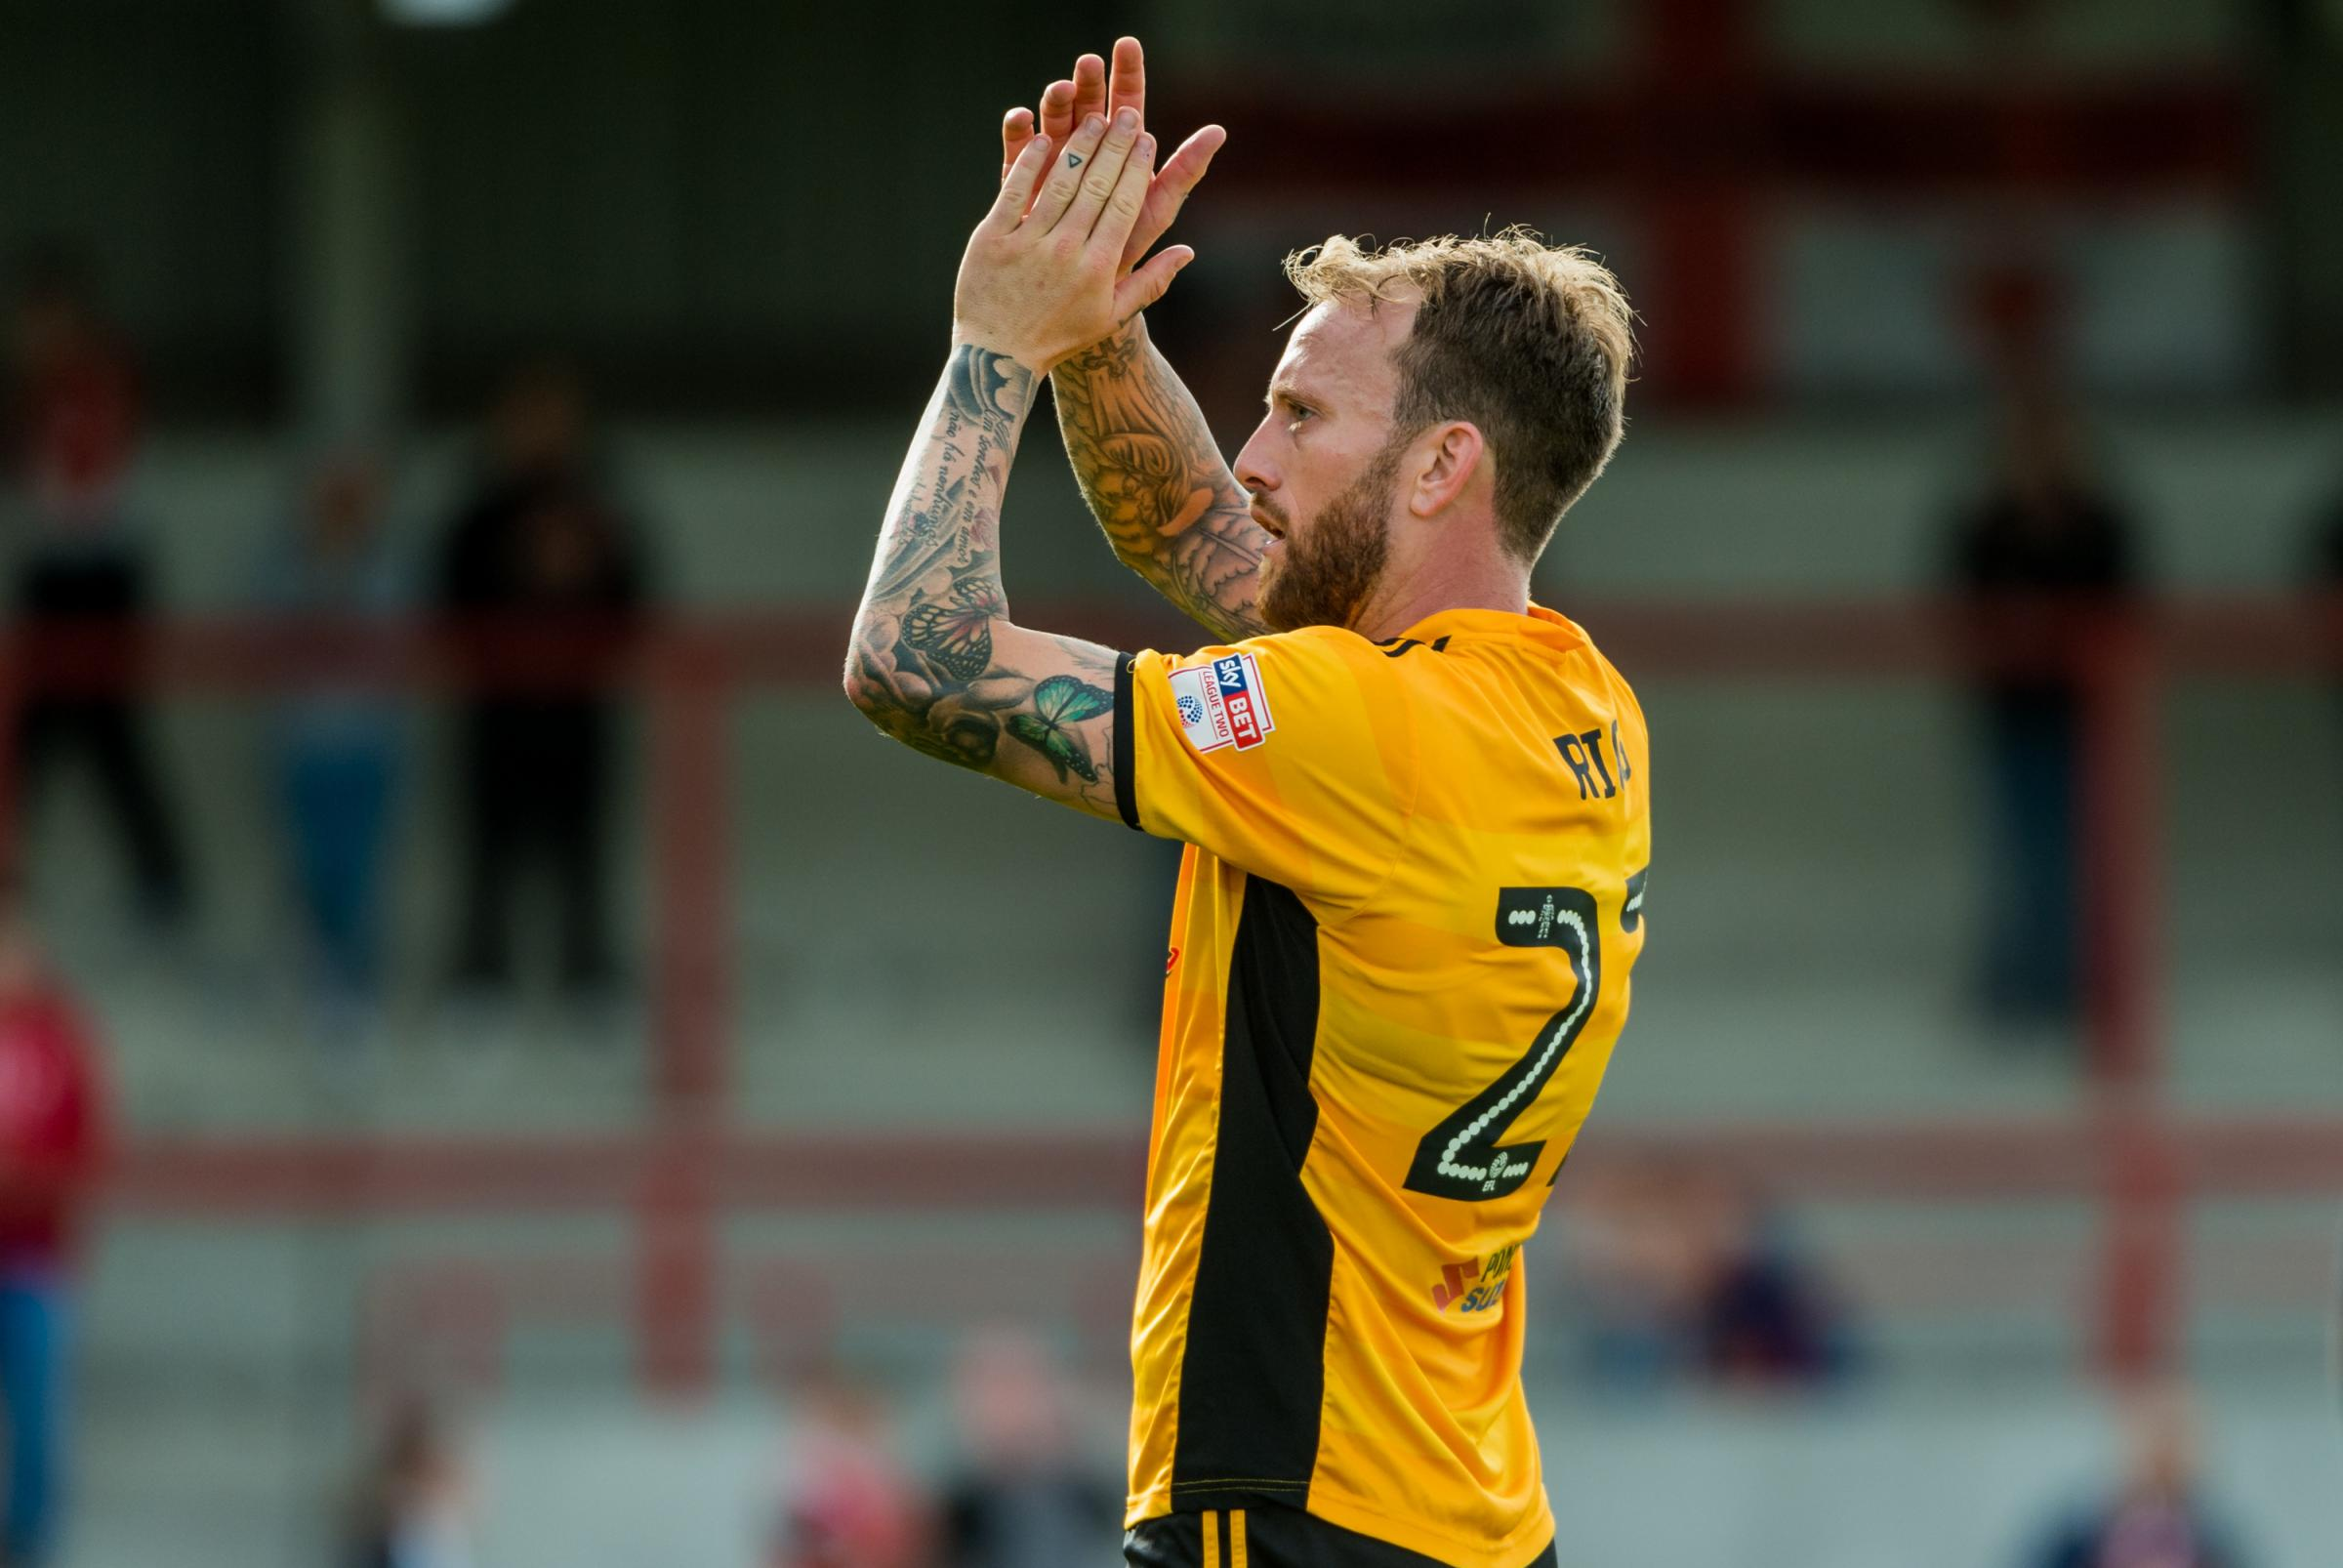 FAREWELL: Sean Rigg wants to become a tattoo artist after leaving Newport County for Bath City